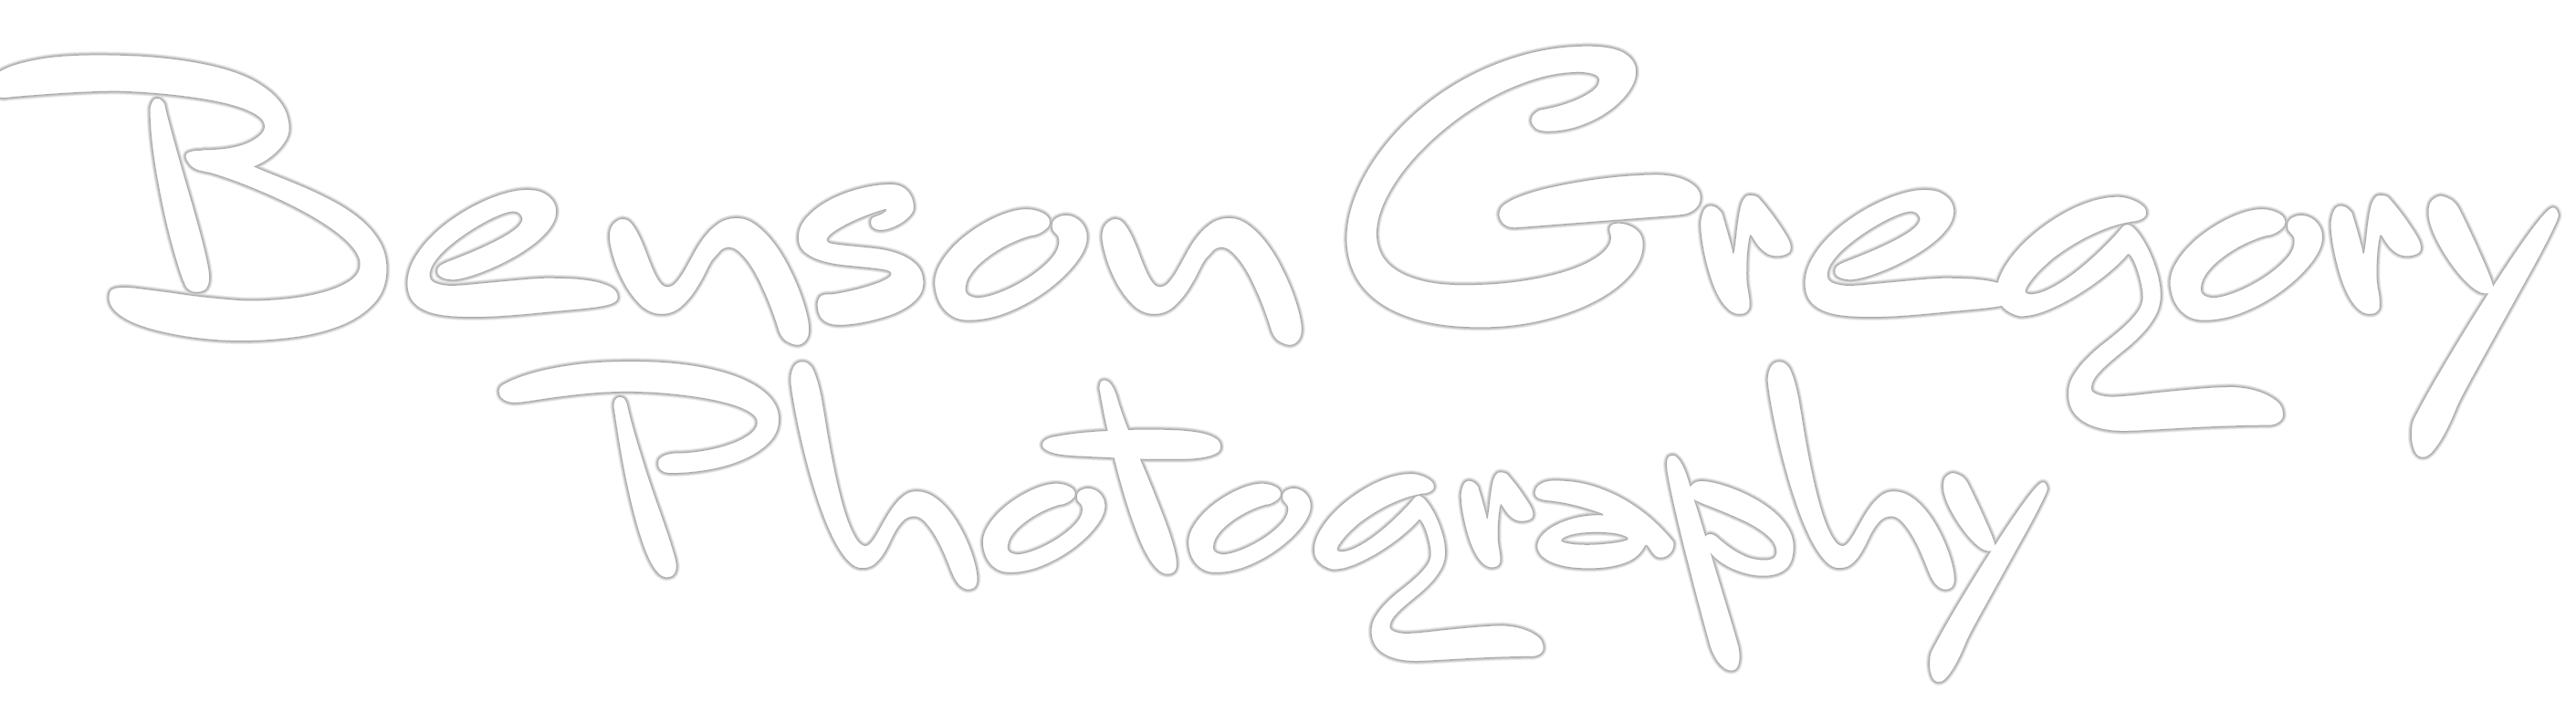 Benson Gregory Photography